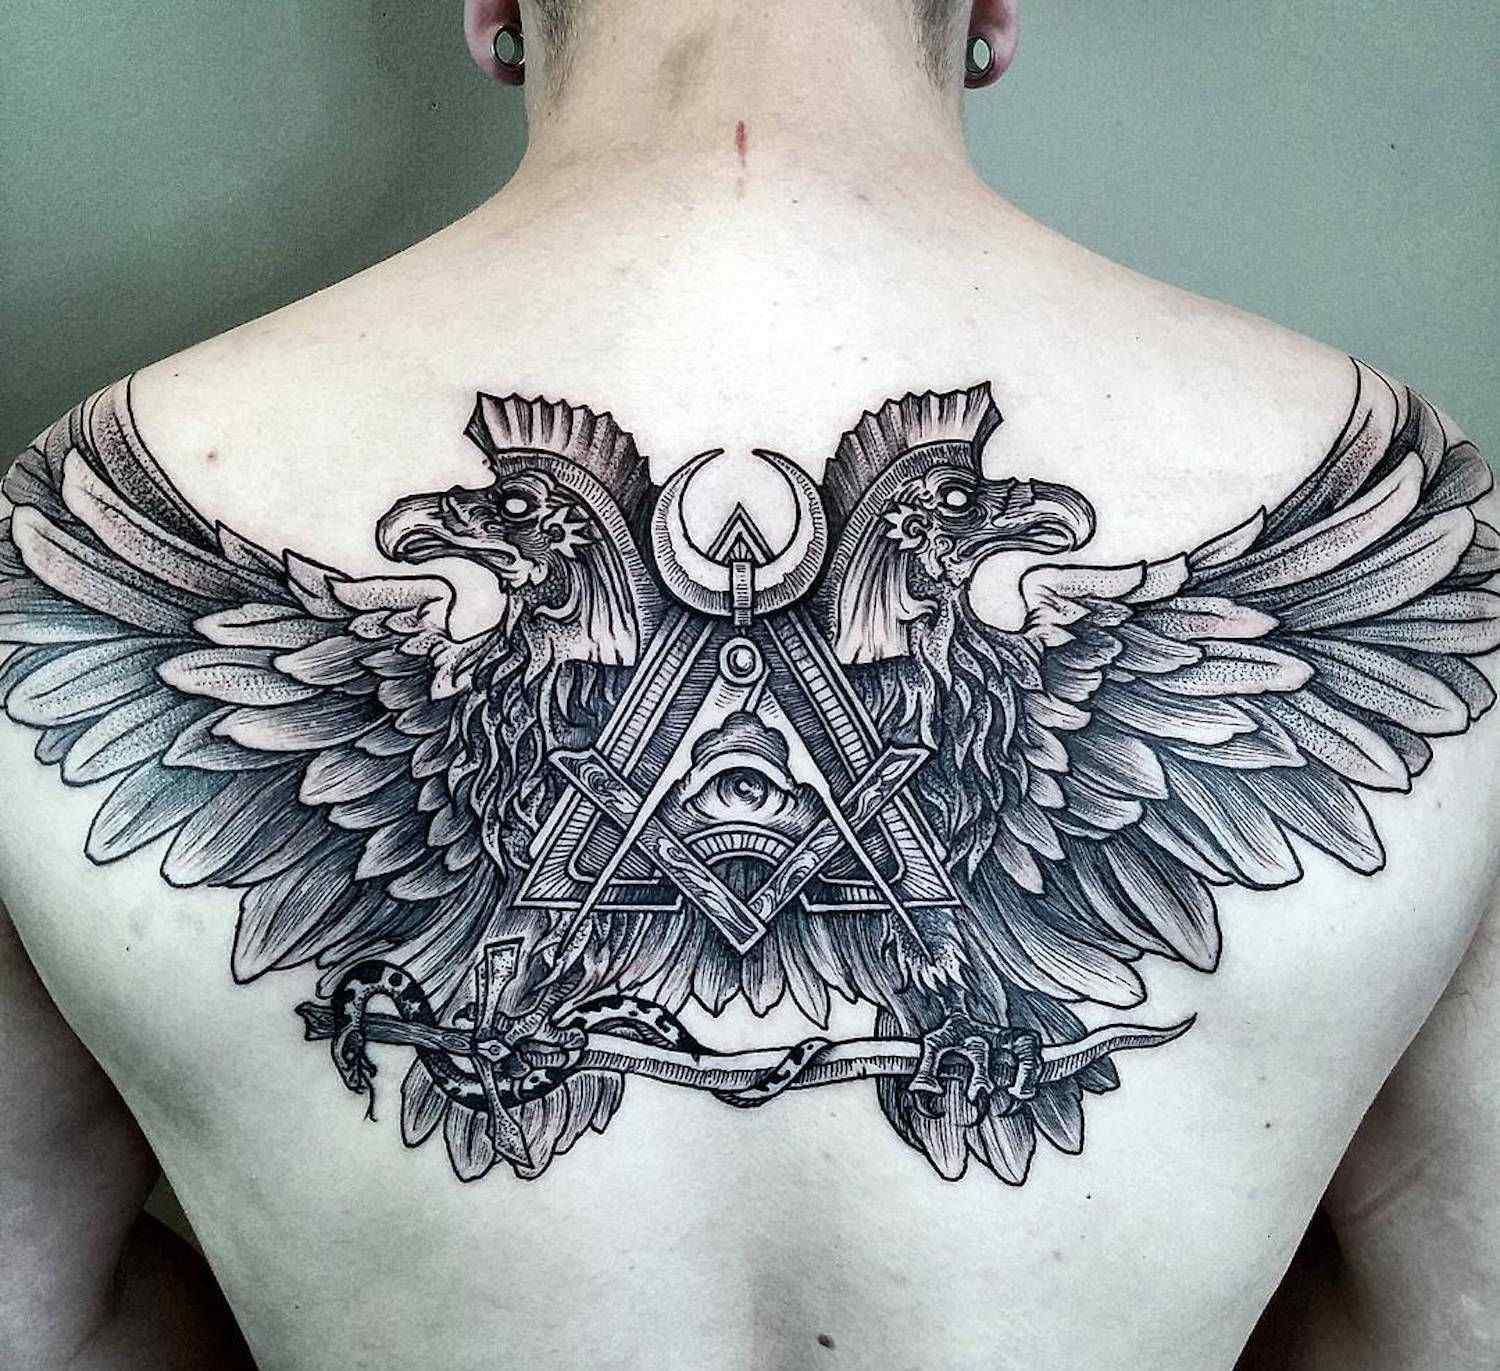 full-chest-tattoos-for-guys-unique-mysticism-etched-on-skin-by-phil-tworavens-skin-of-full-chest-tattoos-for-guys.jpg